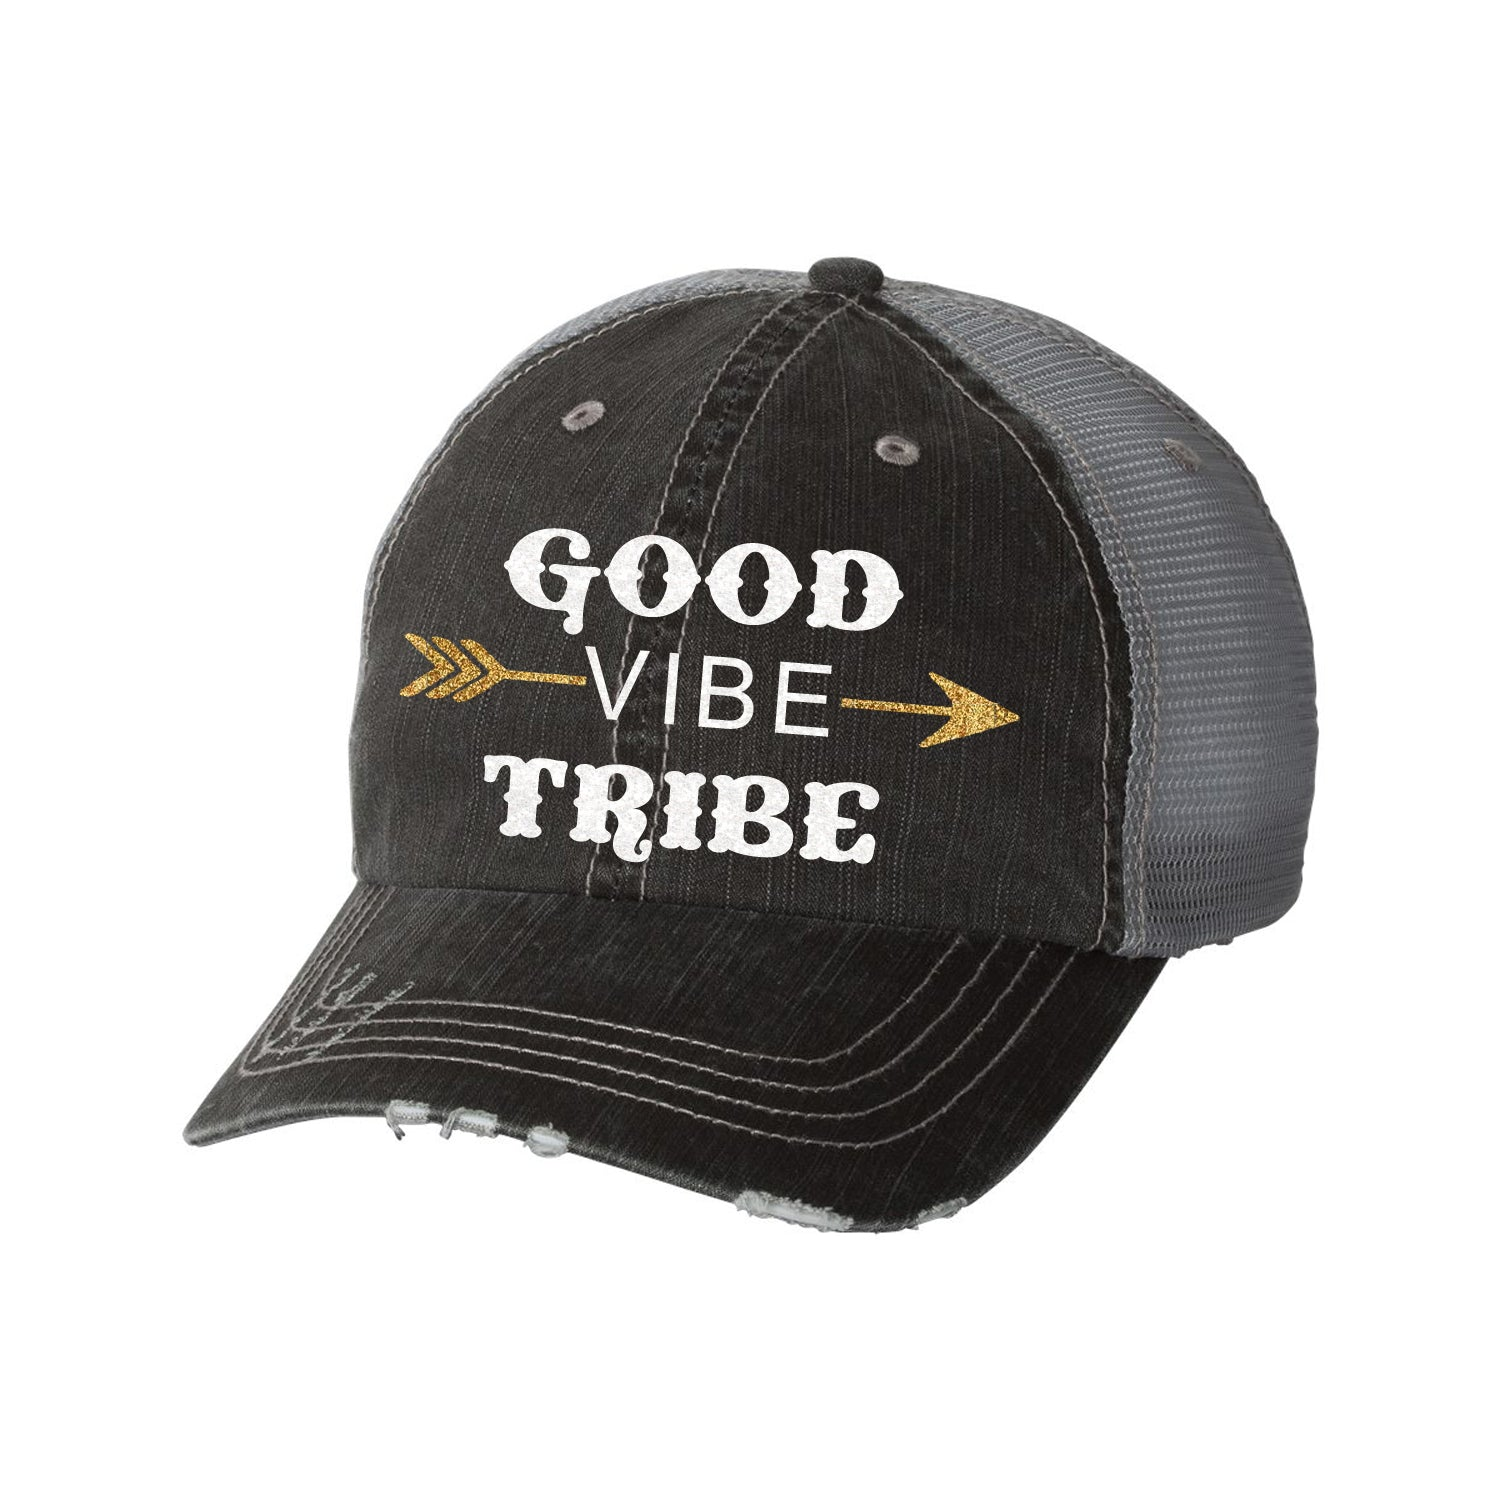 Good Vibes Tribe Distressed Ladies Trucker Hat